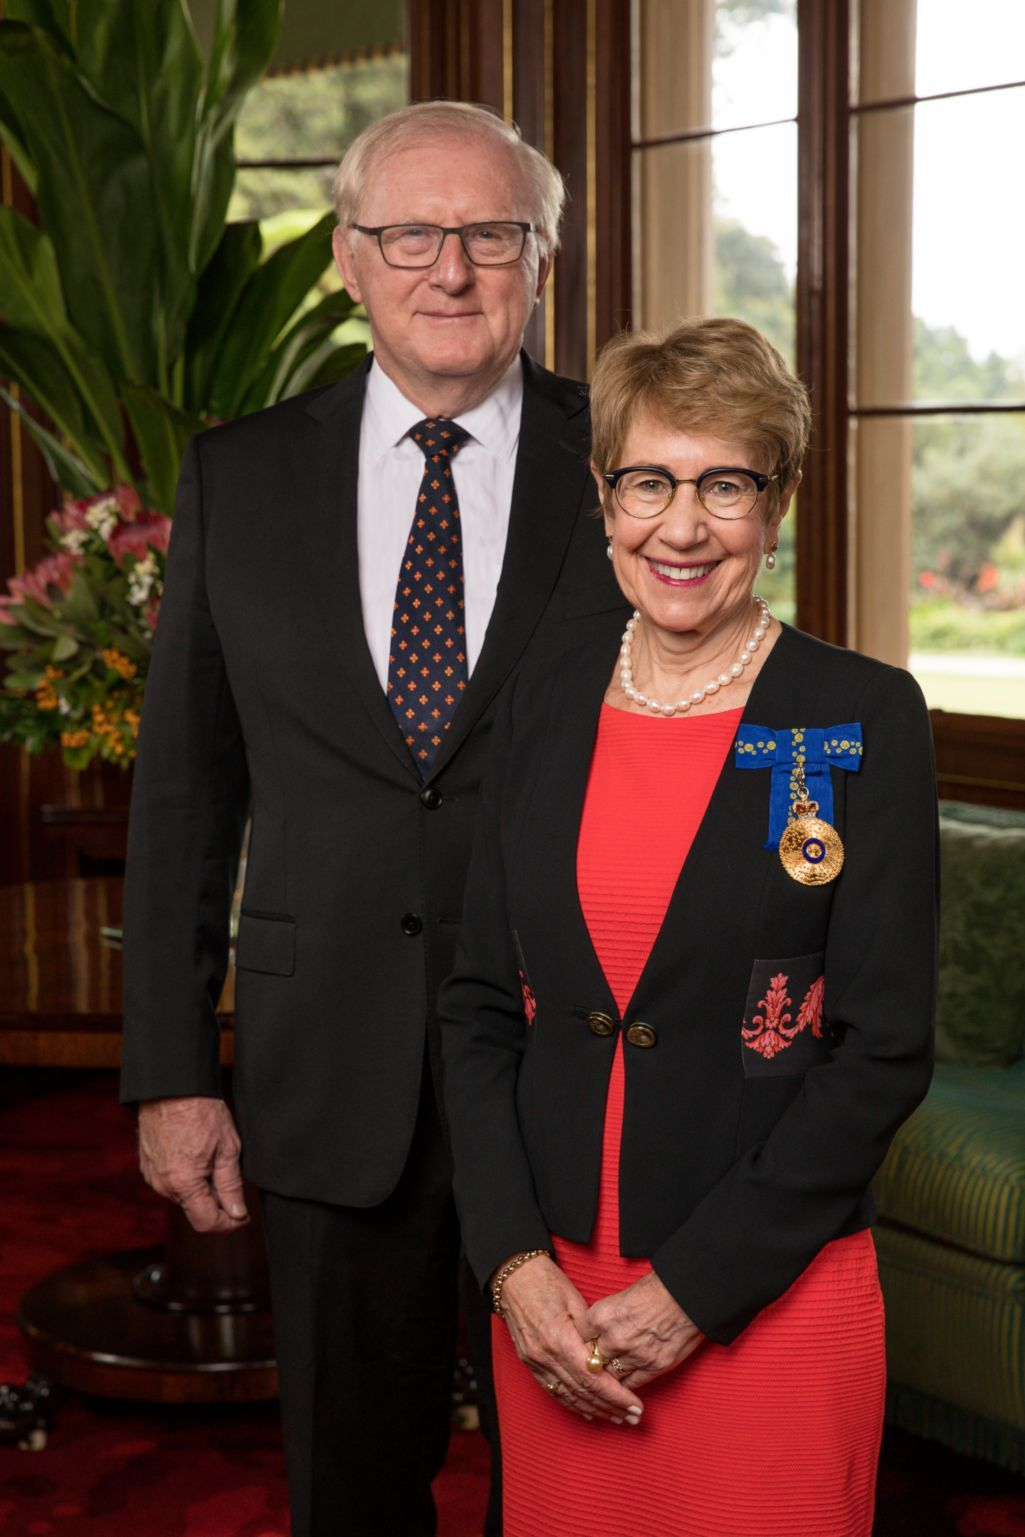 her-excellency-the-honourable-margaret-beazley-ao-qc-governor-of-new-south-wales-and-mr-dennis-wilson-full-res